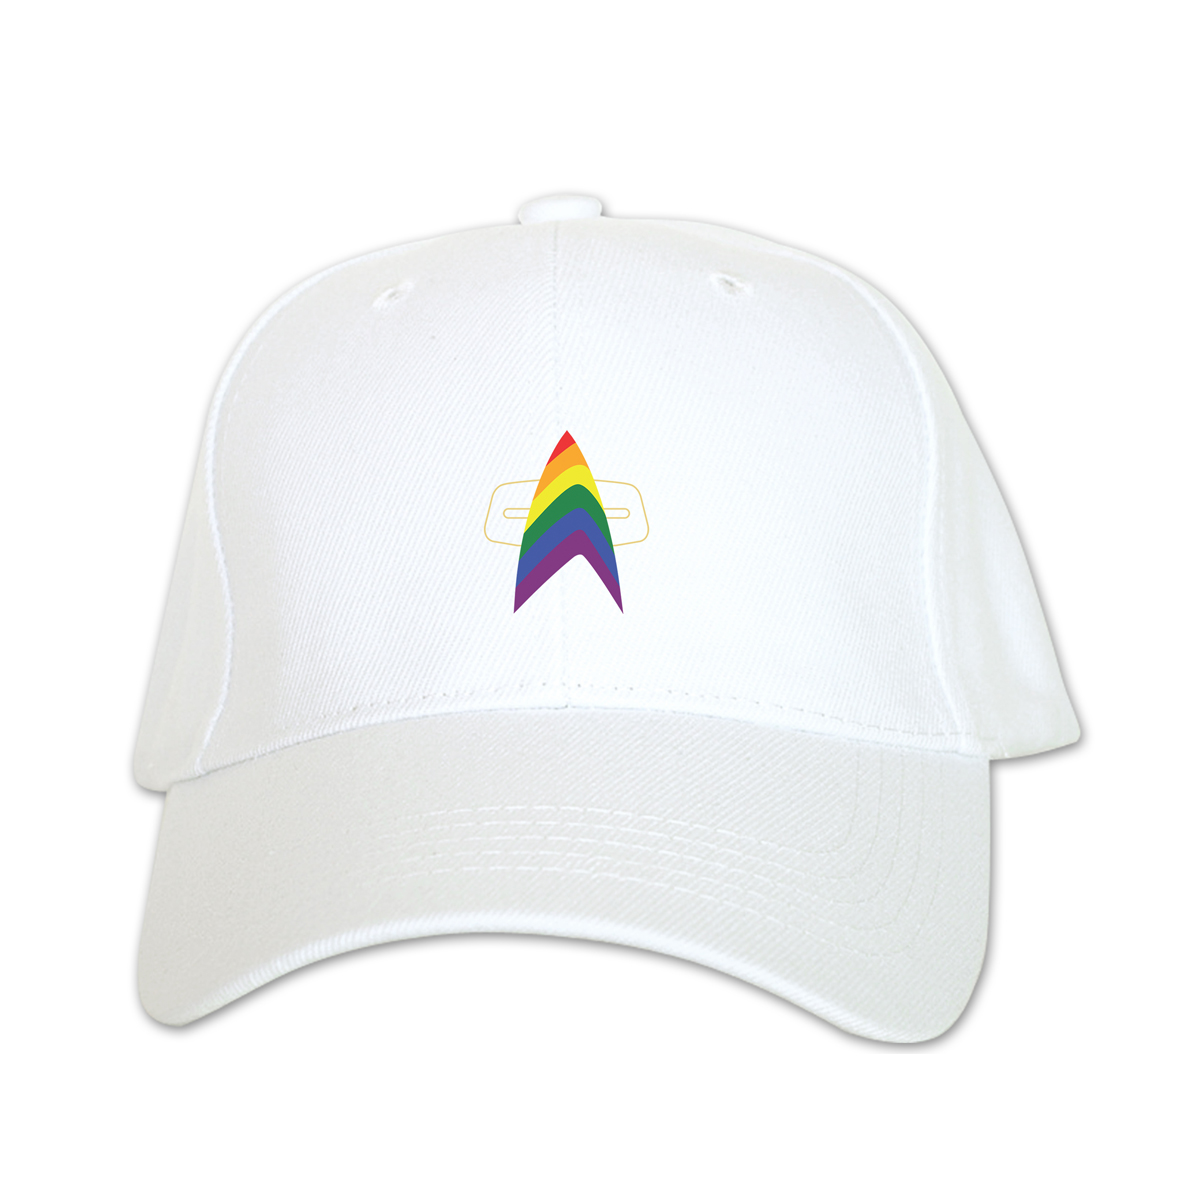 Star Trek Voyager Pride Baseball Hat